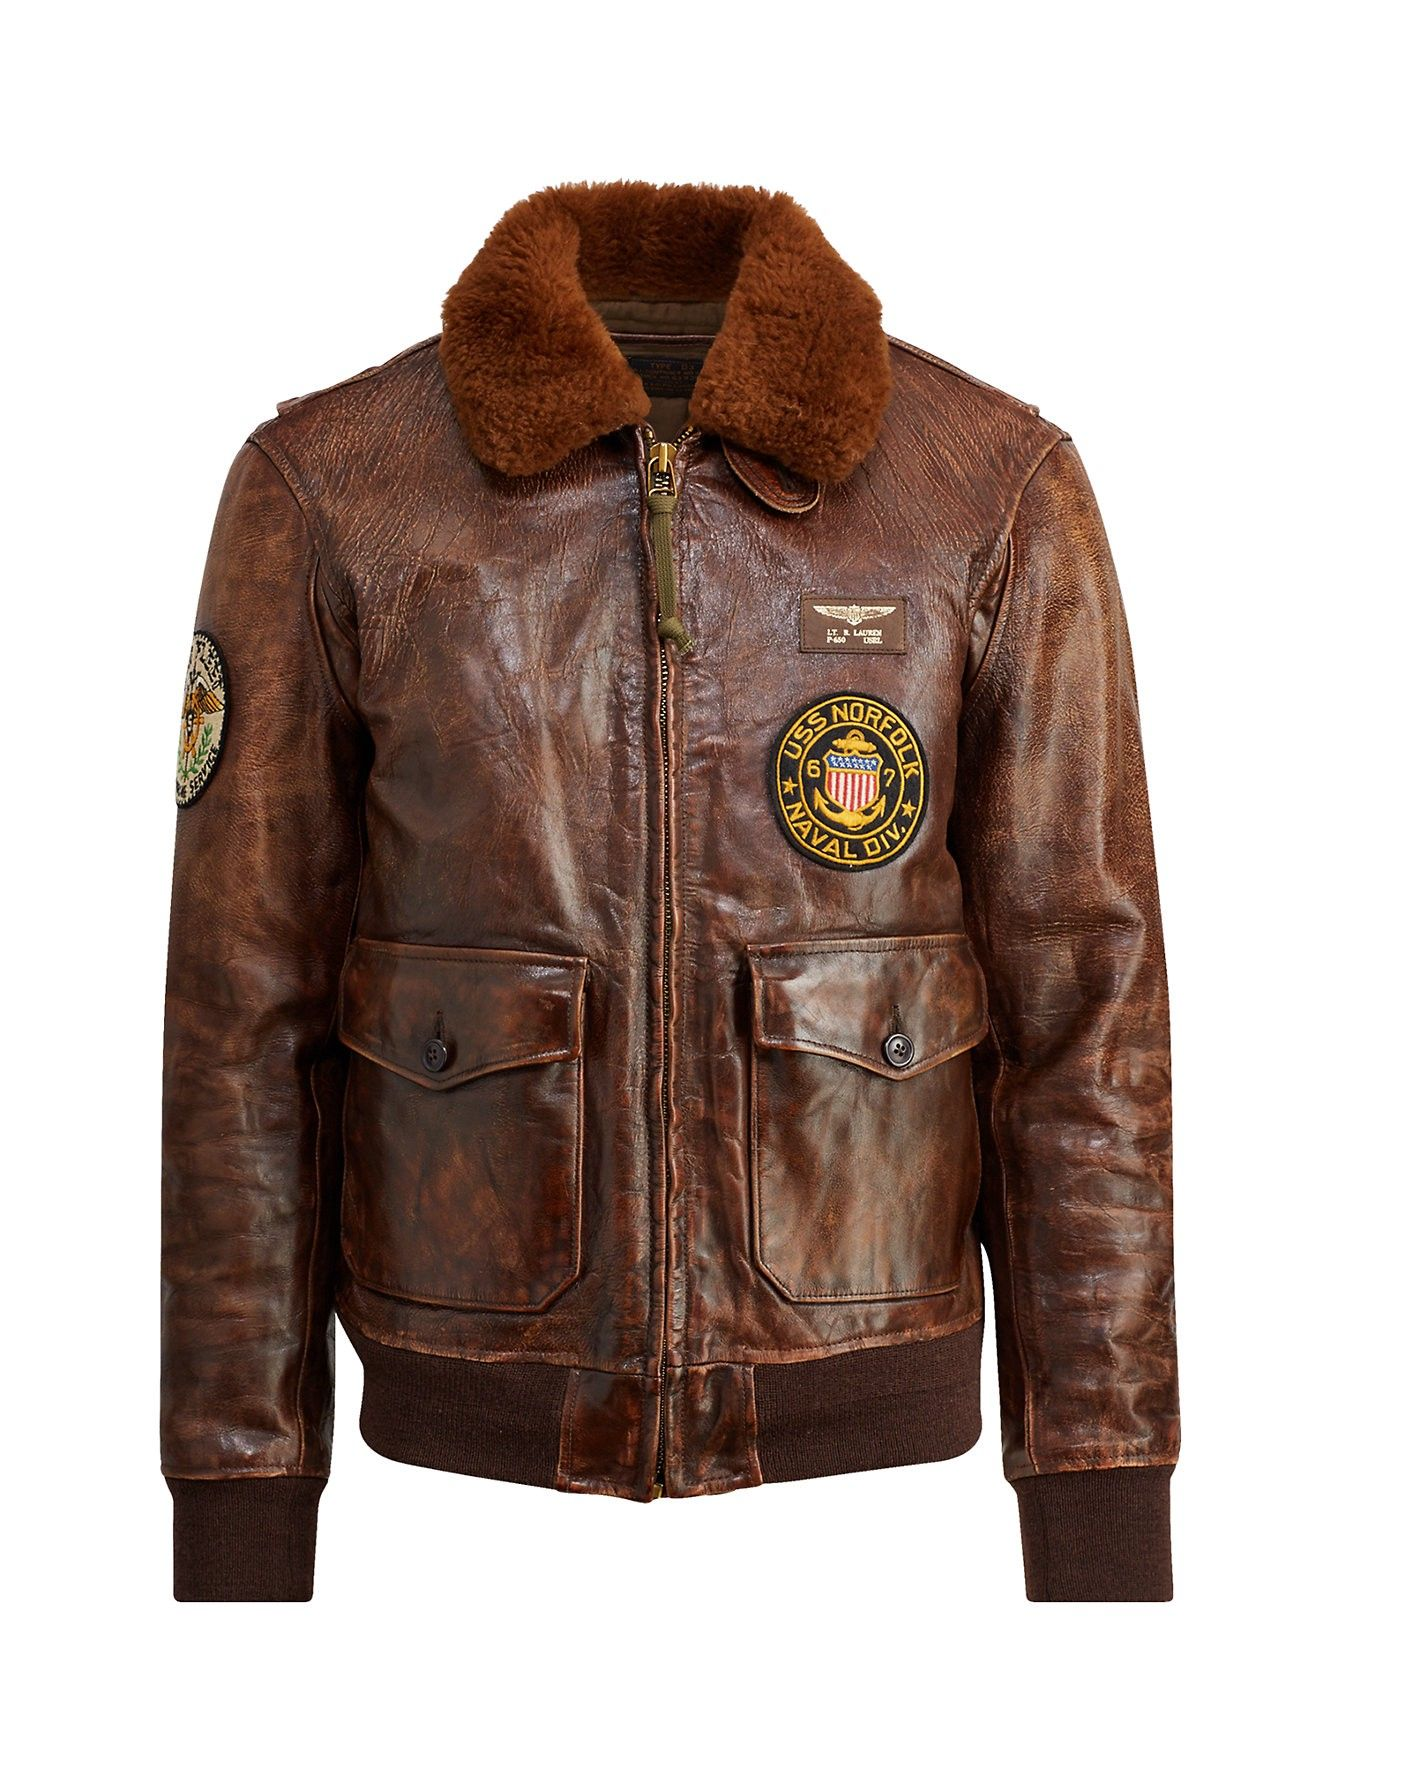 RALPH LAUREN Polo Ralph Lauren The Iconic G-1 Bomber Jacket.  ralphlauren   cloth   d0cd6a15905